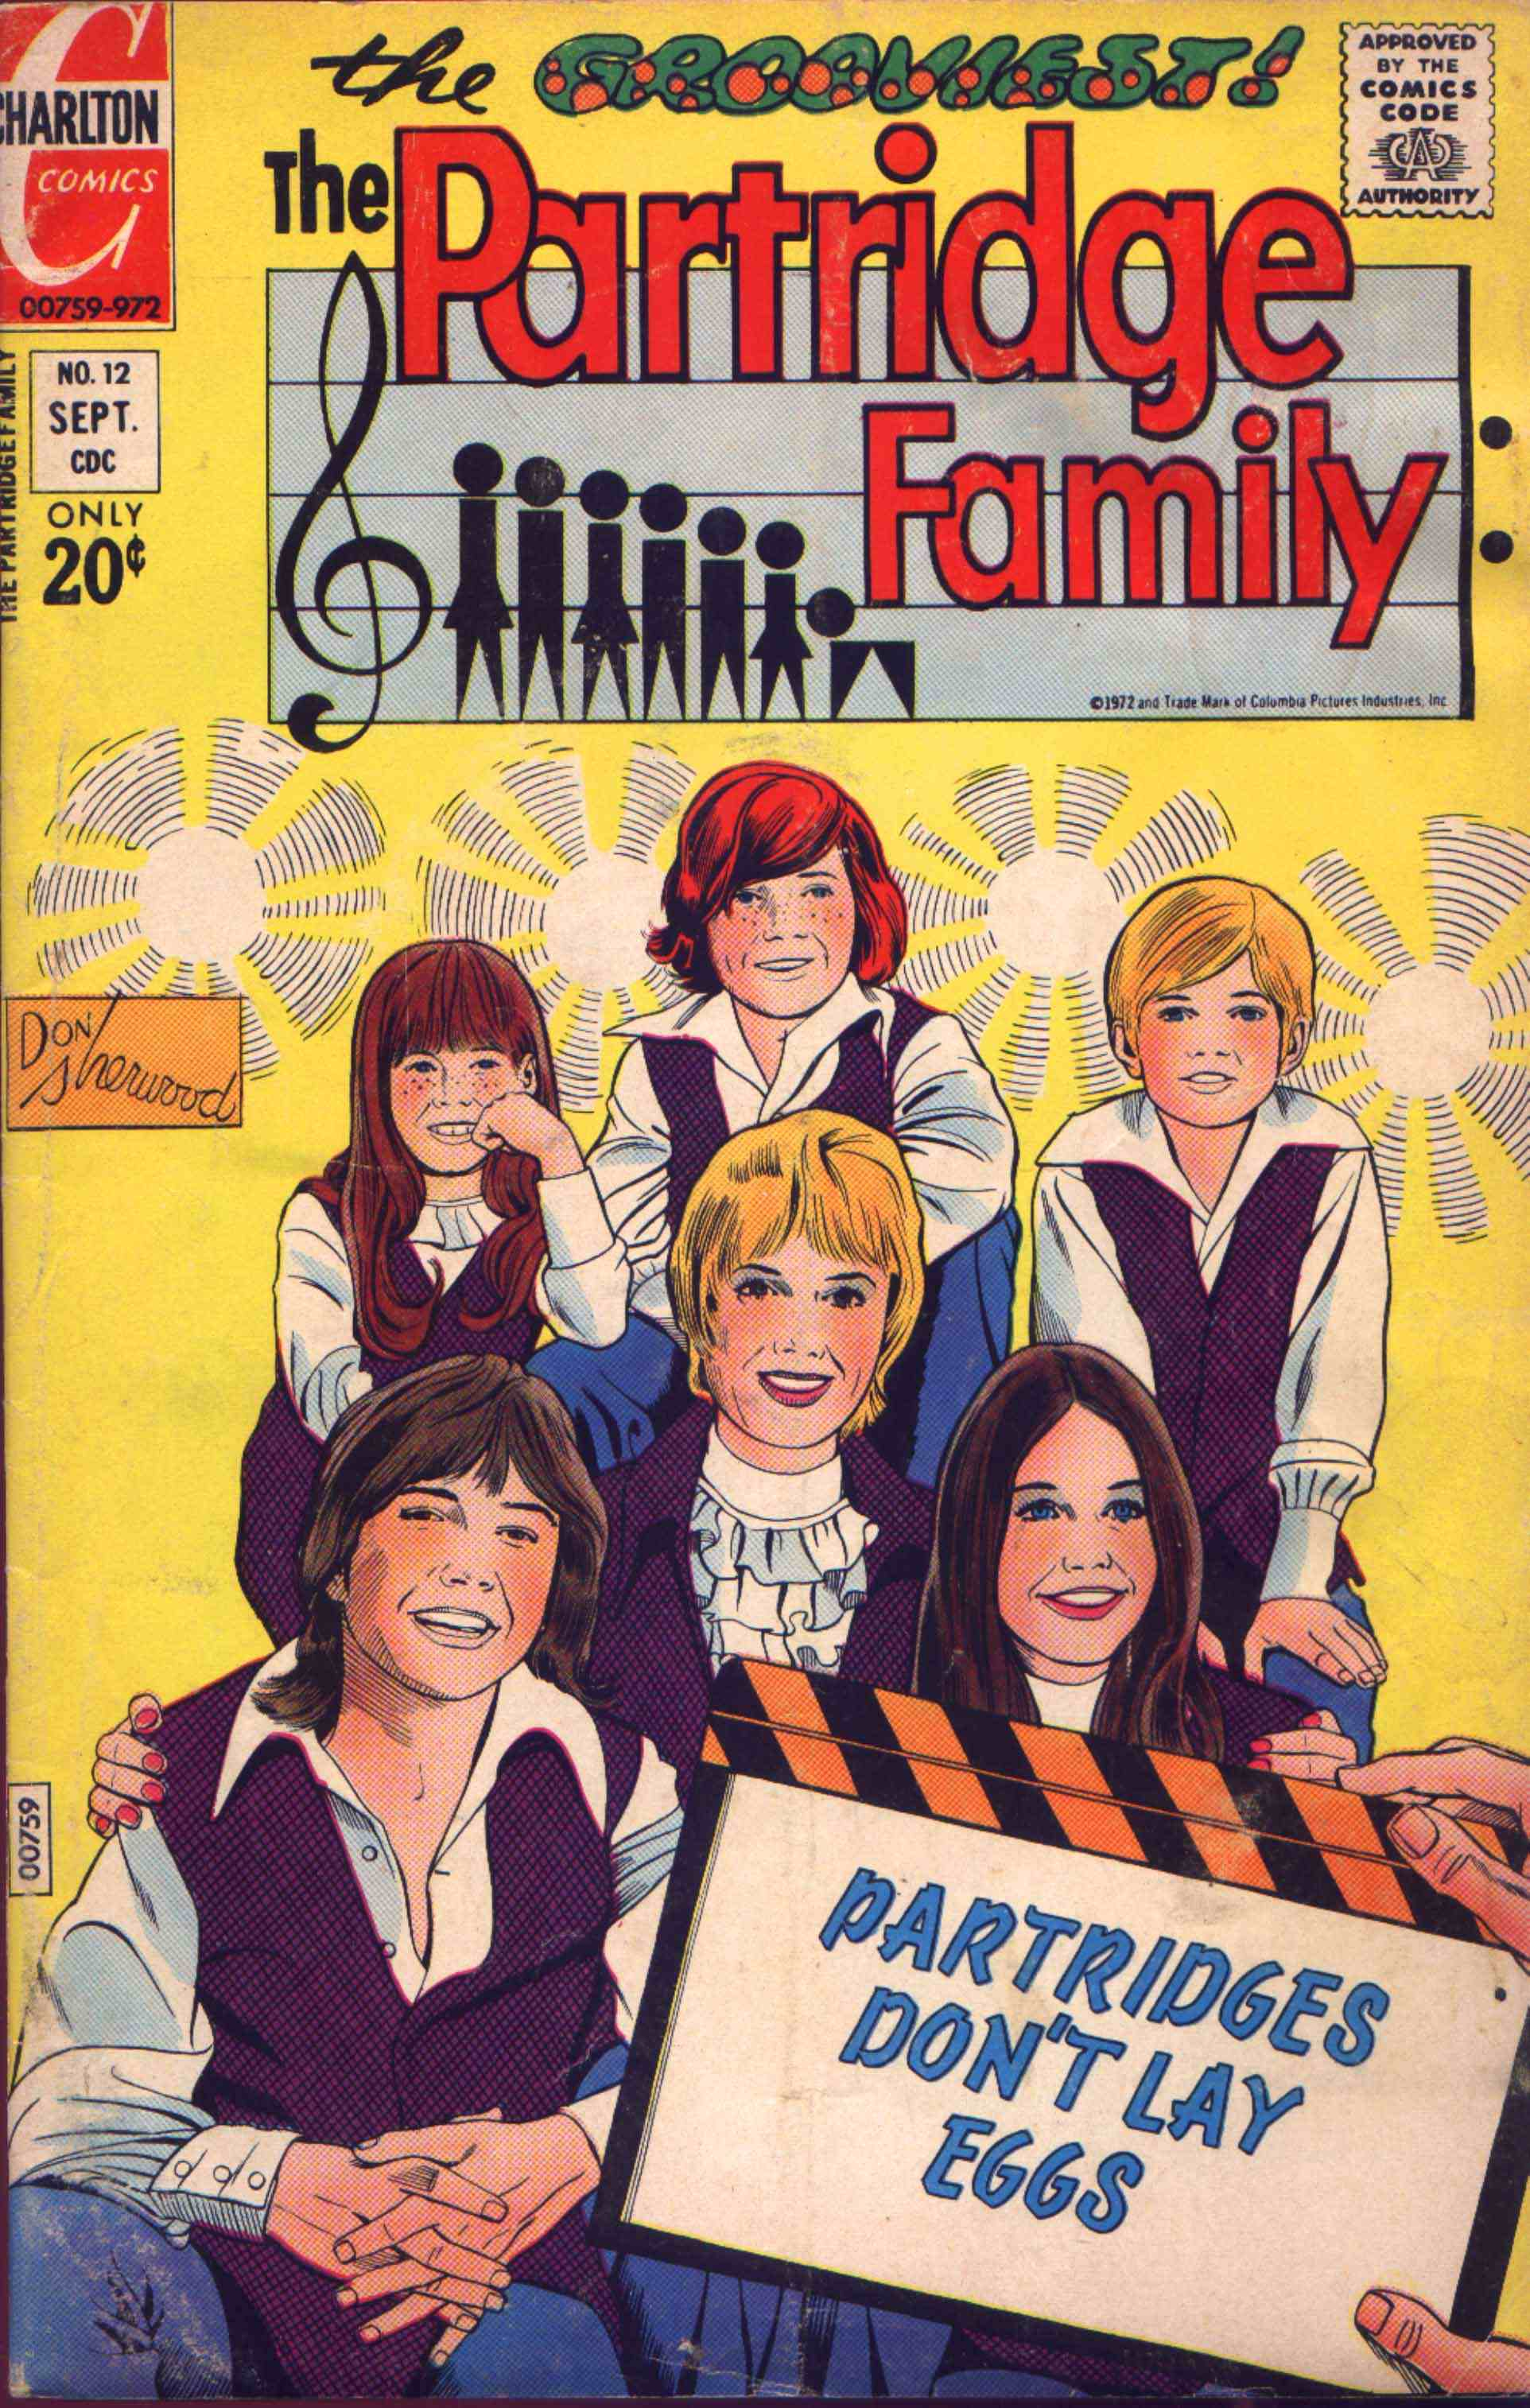 The Partridge Family, Vol.2 No.12 (September 1972) Charlton